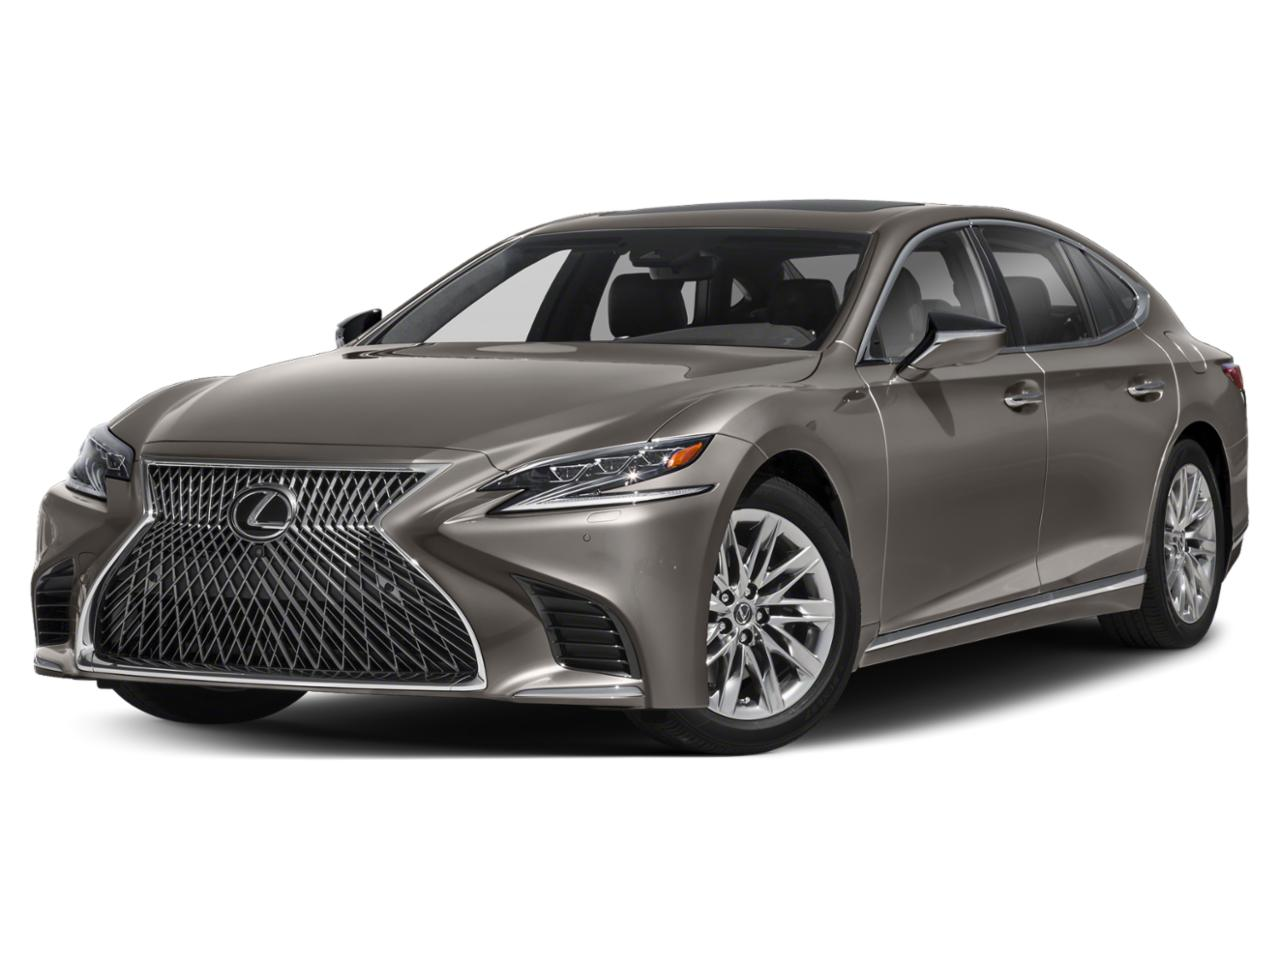 2020 Lexus LS Vehicle Photo in Fort Worth, TX 76132